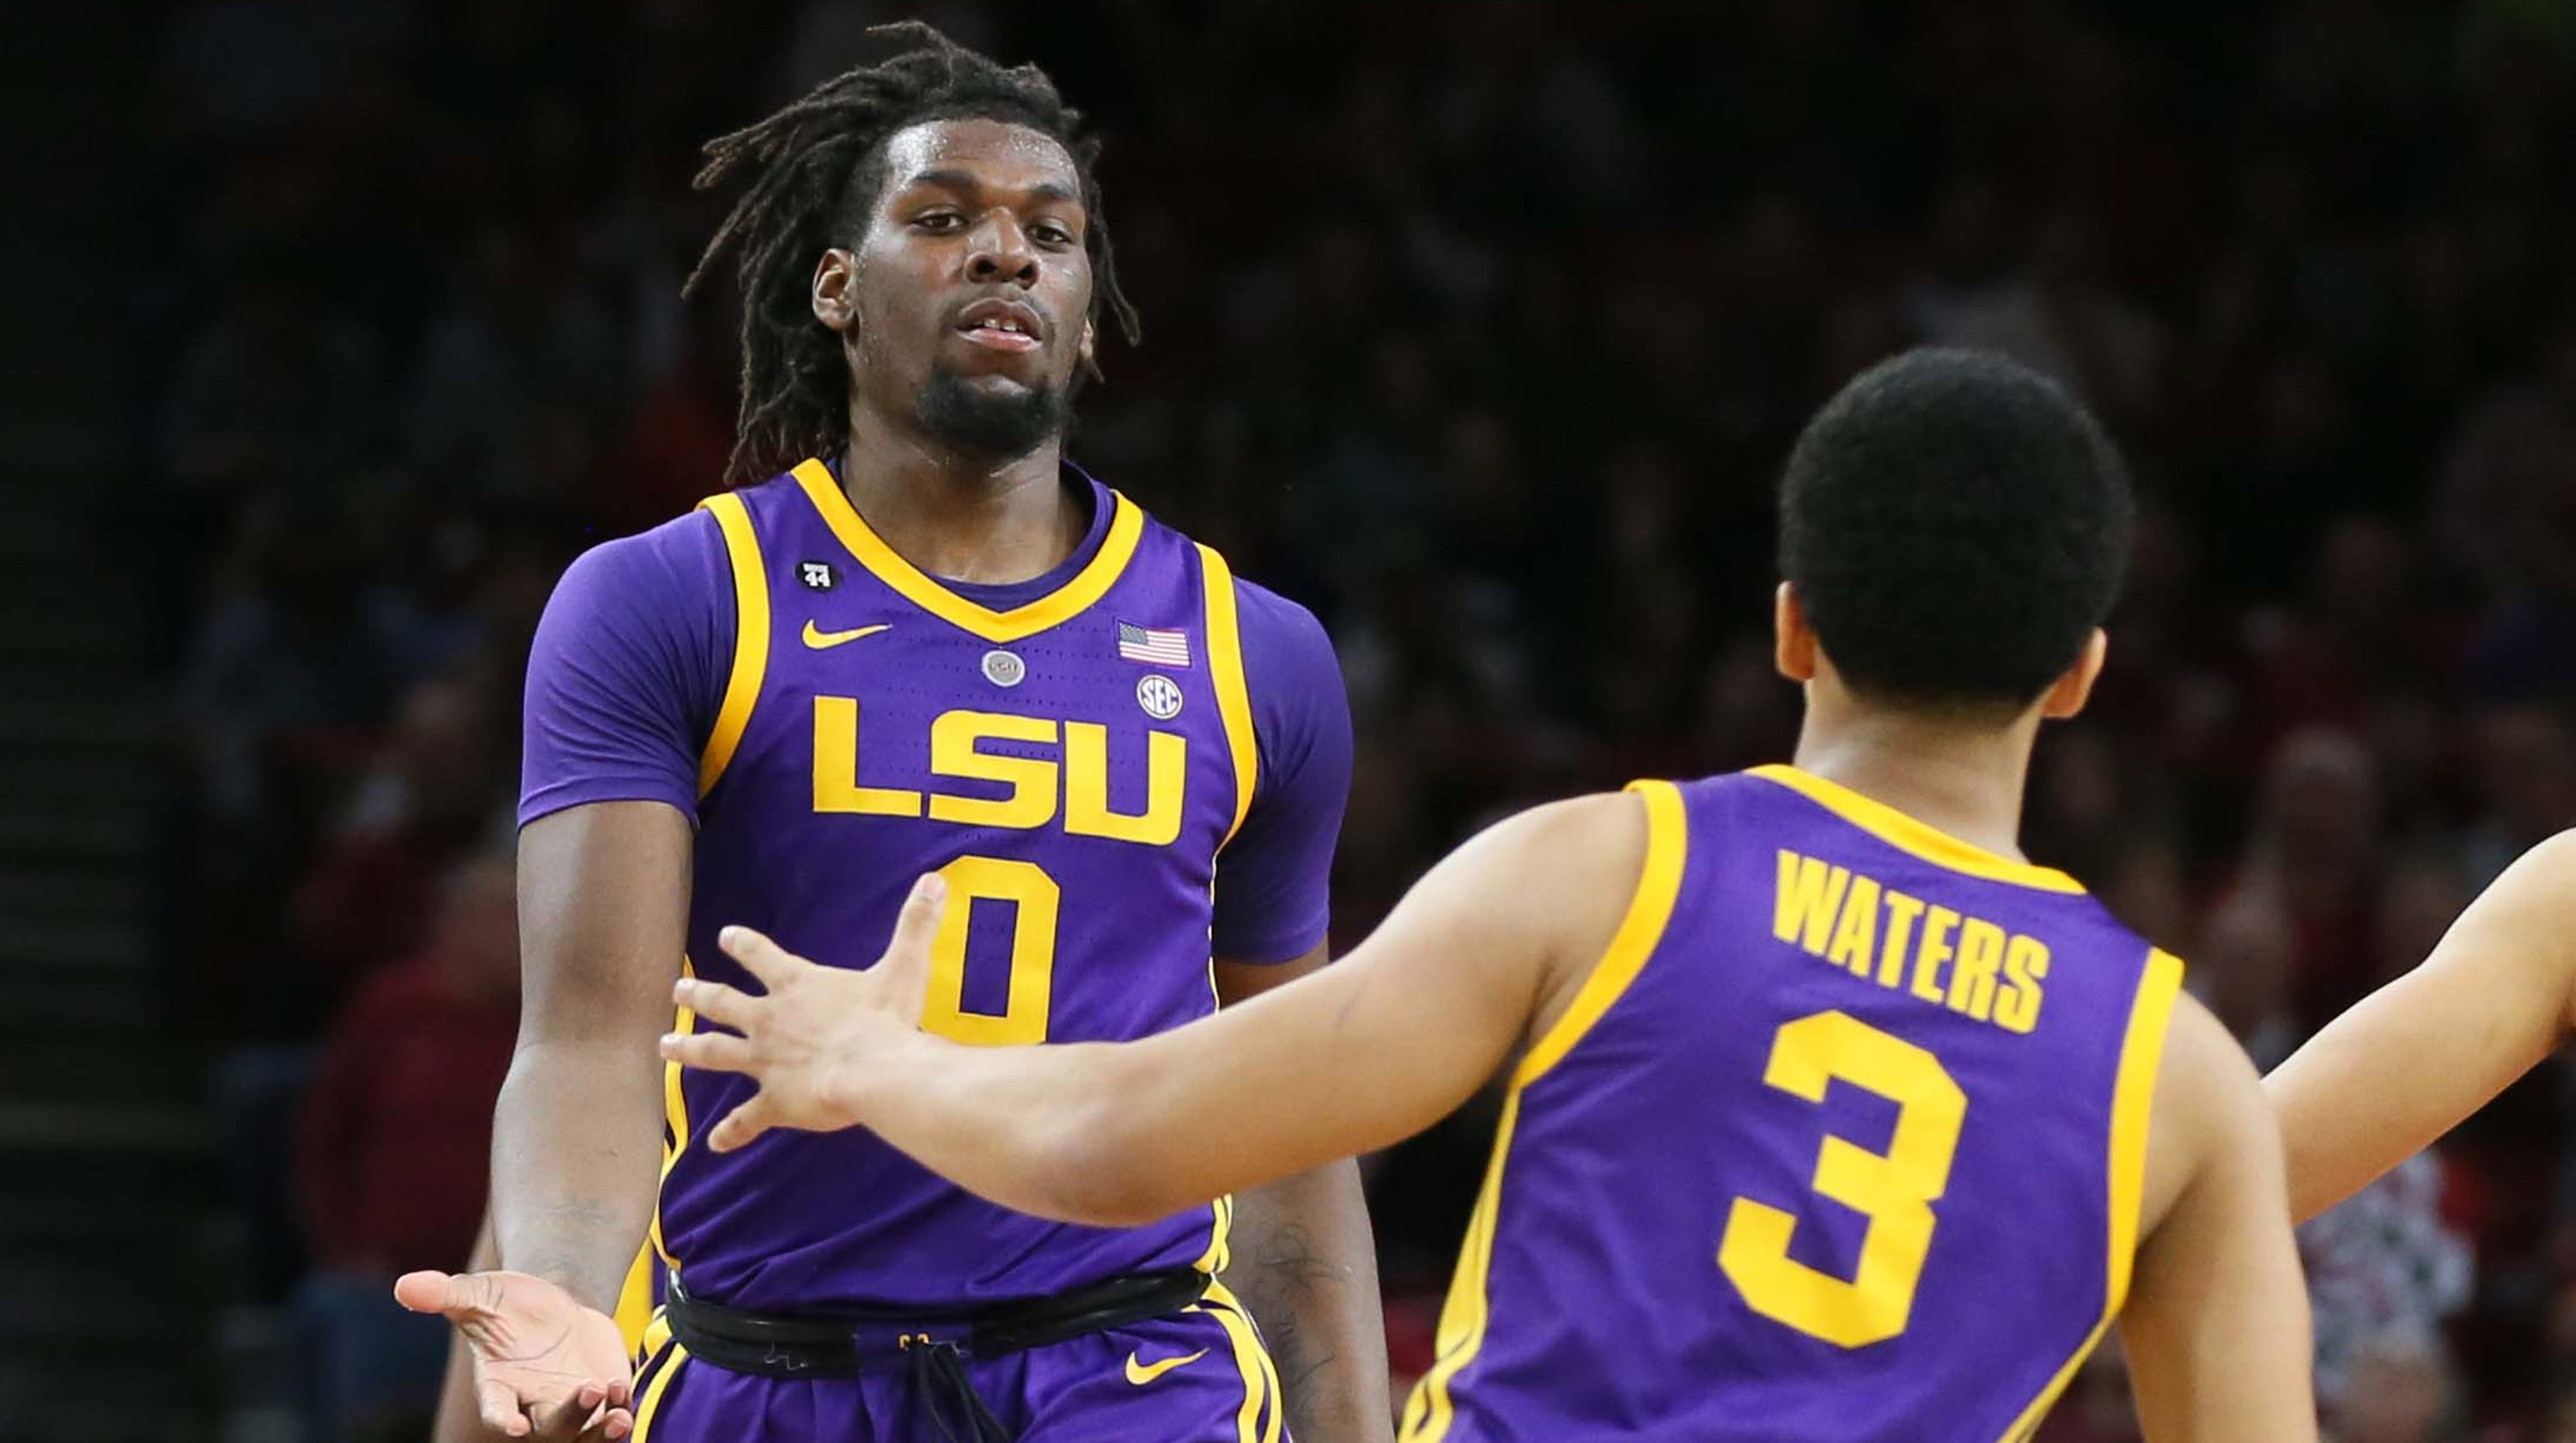 903a3148ff7 Tennessee basketball: LSU will test UT Vols in key SEC matchup